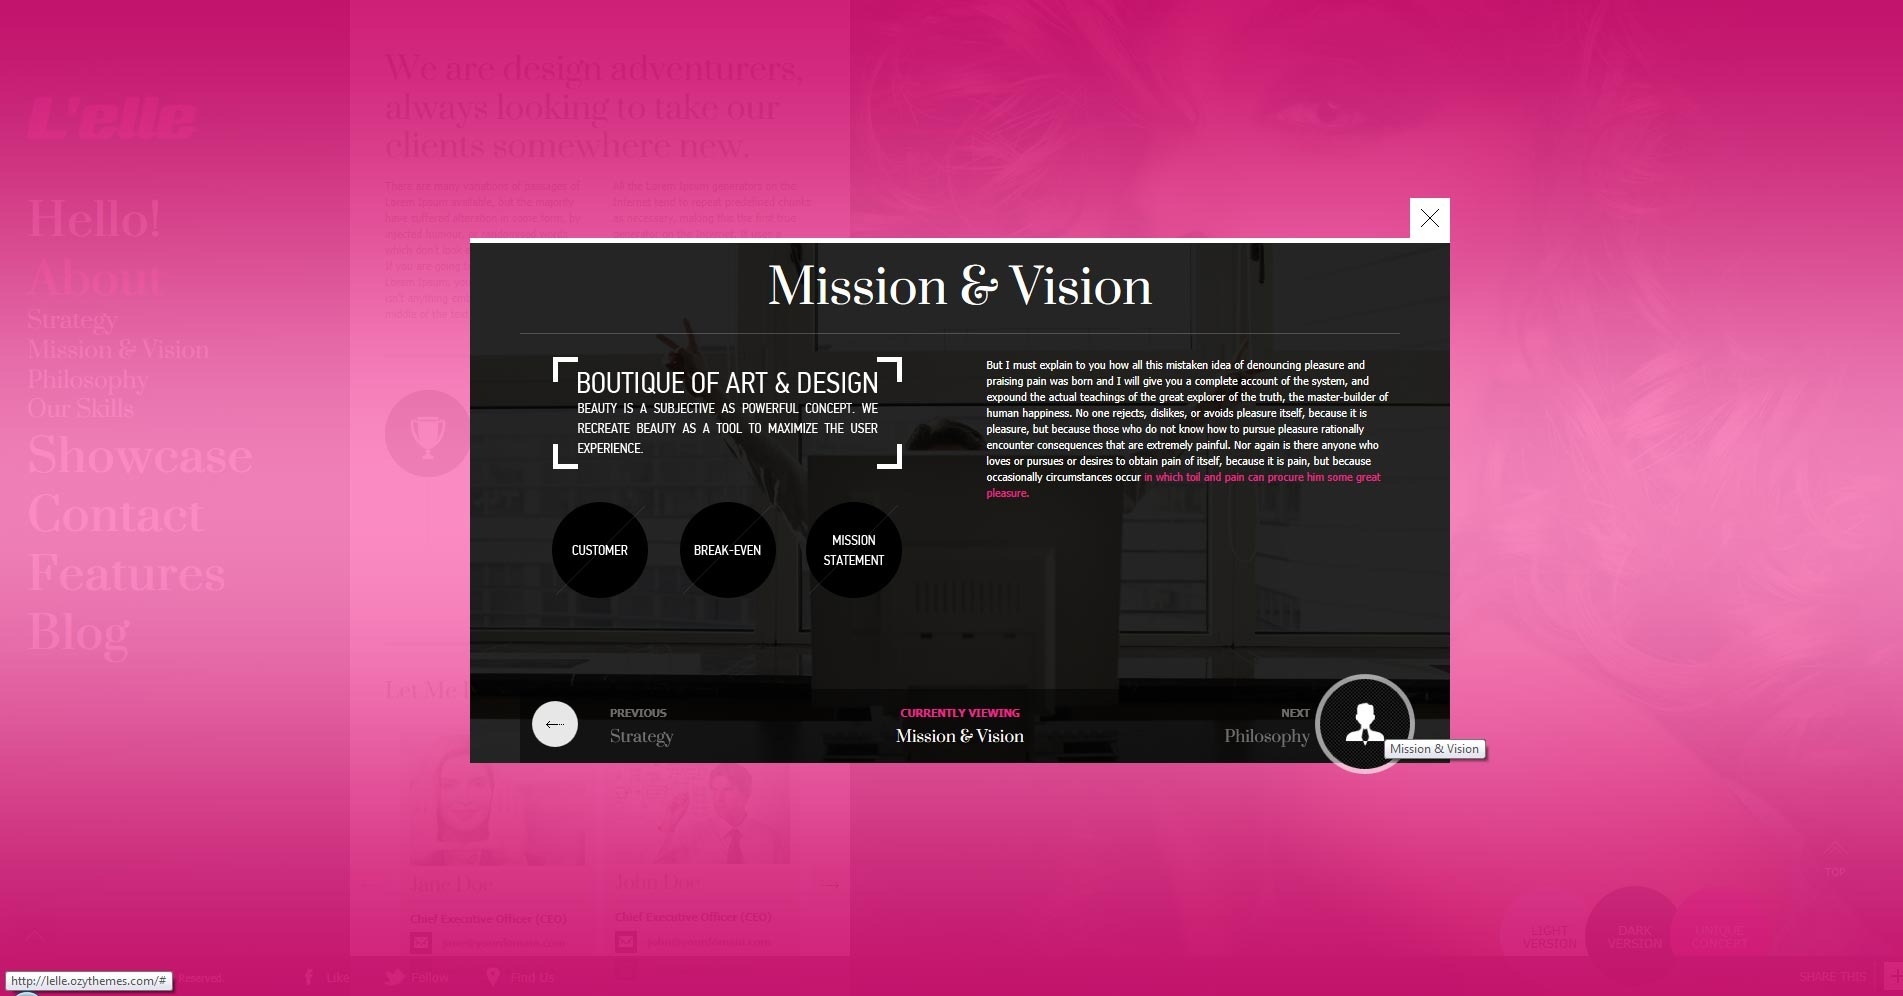 L'elle Creative Agency Showcase - about us overlay mission content opened